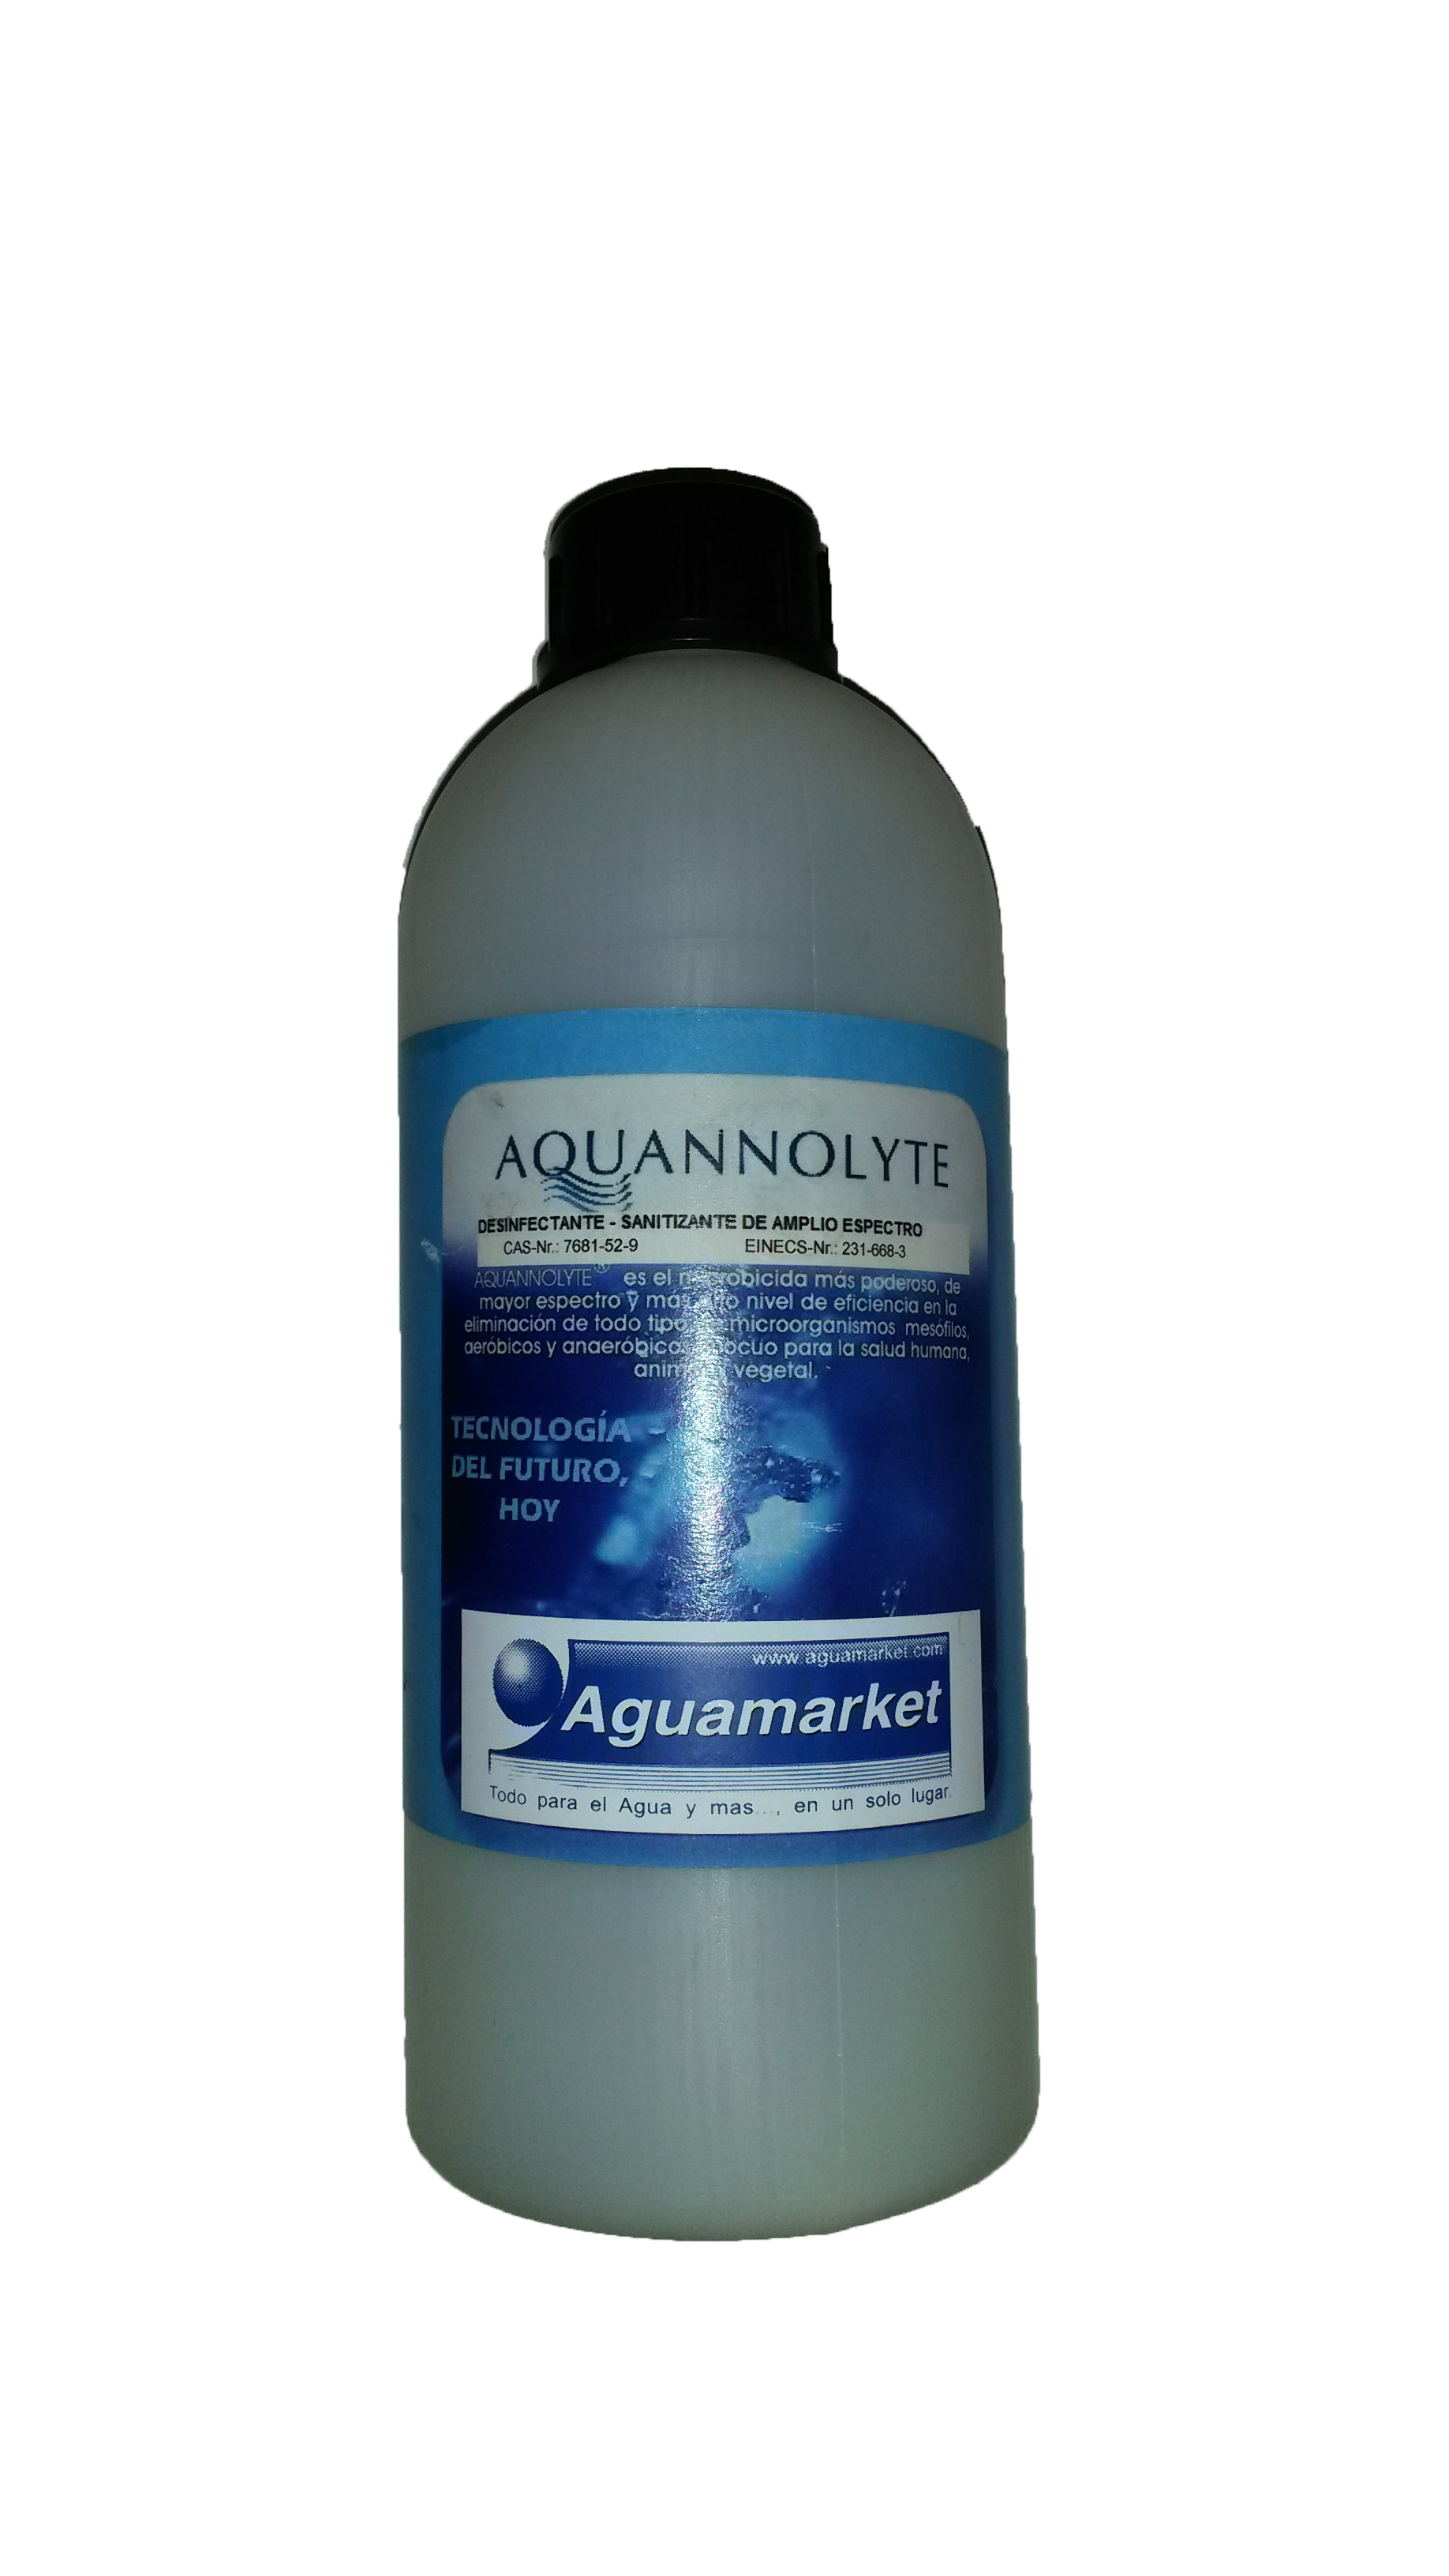 Aquannolyte